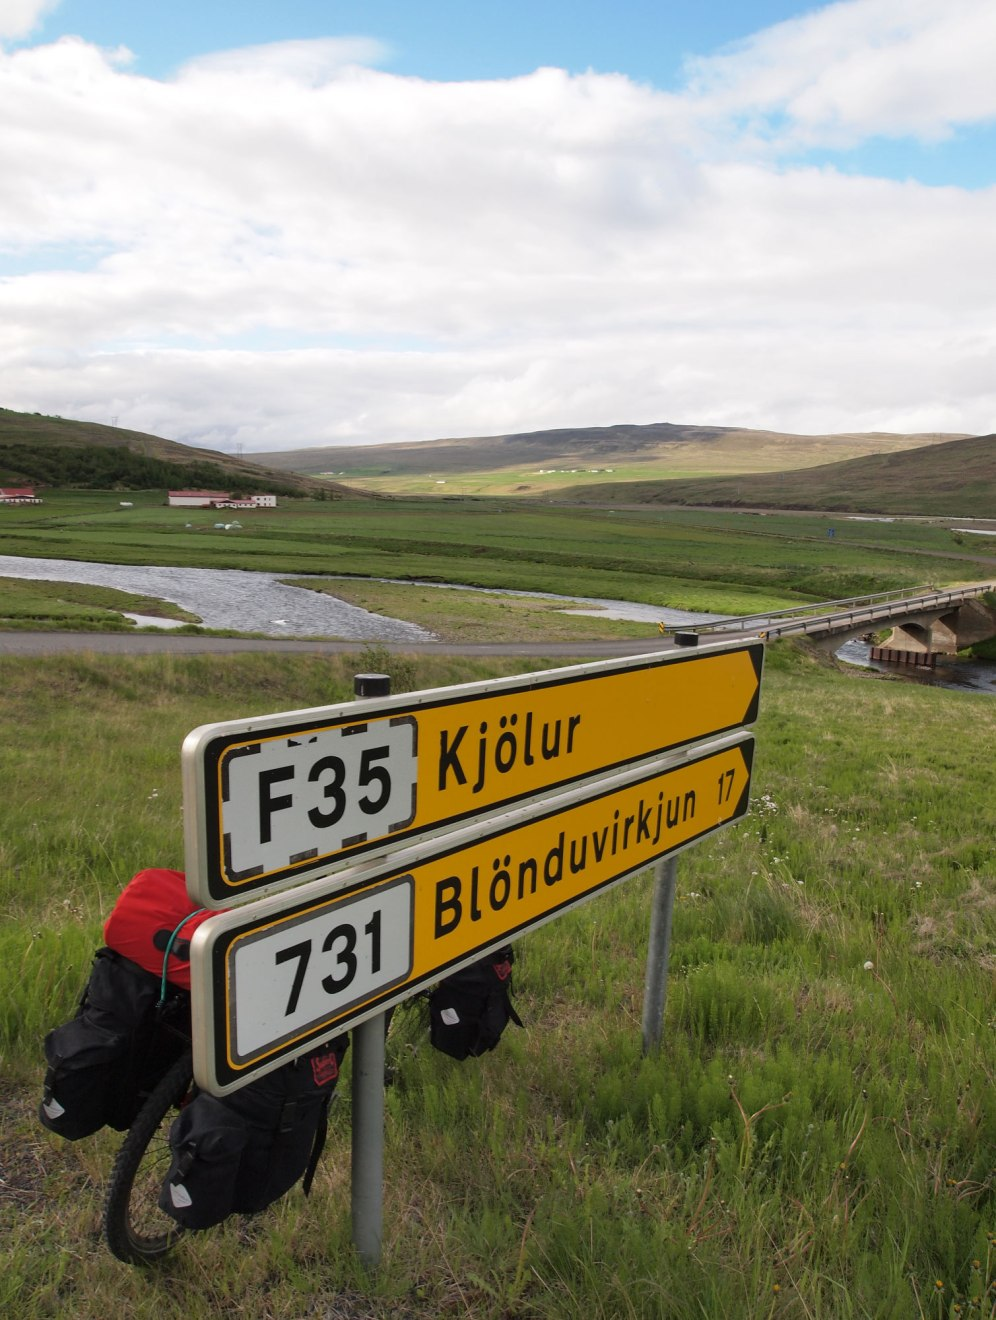 Kjolur junction